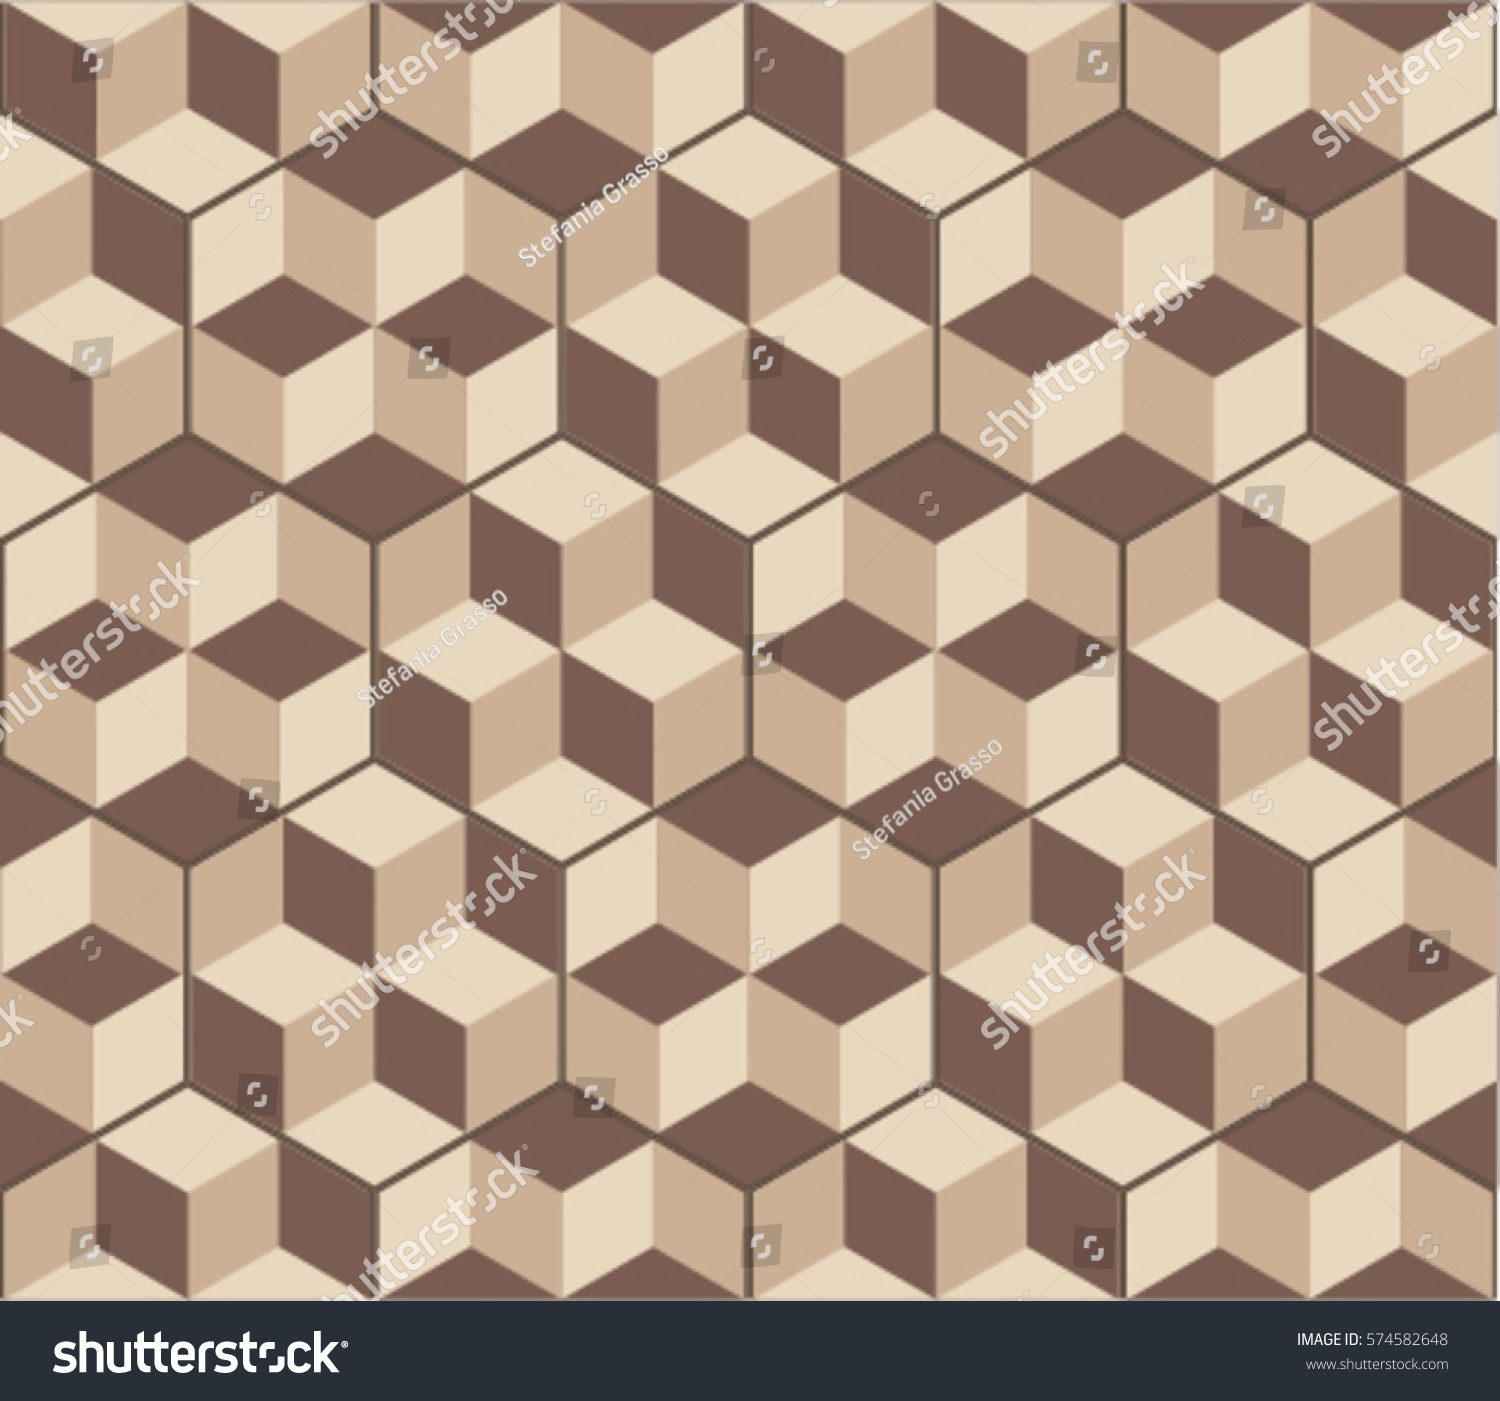 Hexagonal tiles with optical illusion decor floor and wall texture vintage style pattern for modern interiors seamless geometric volume pattern